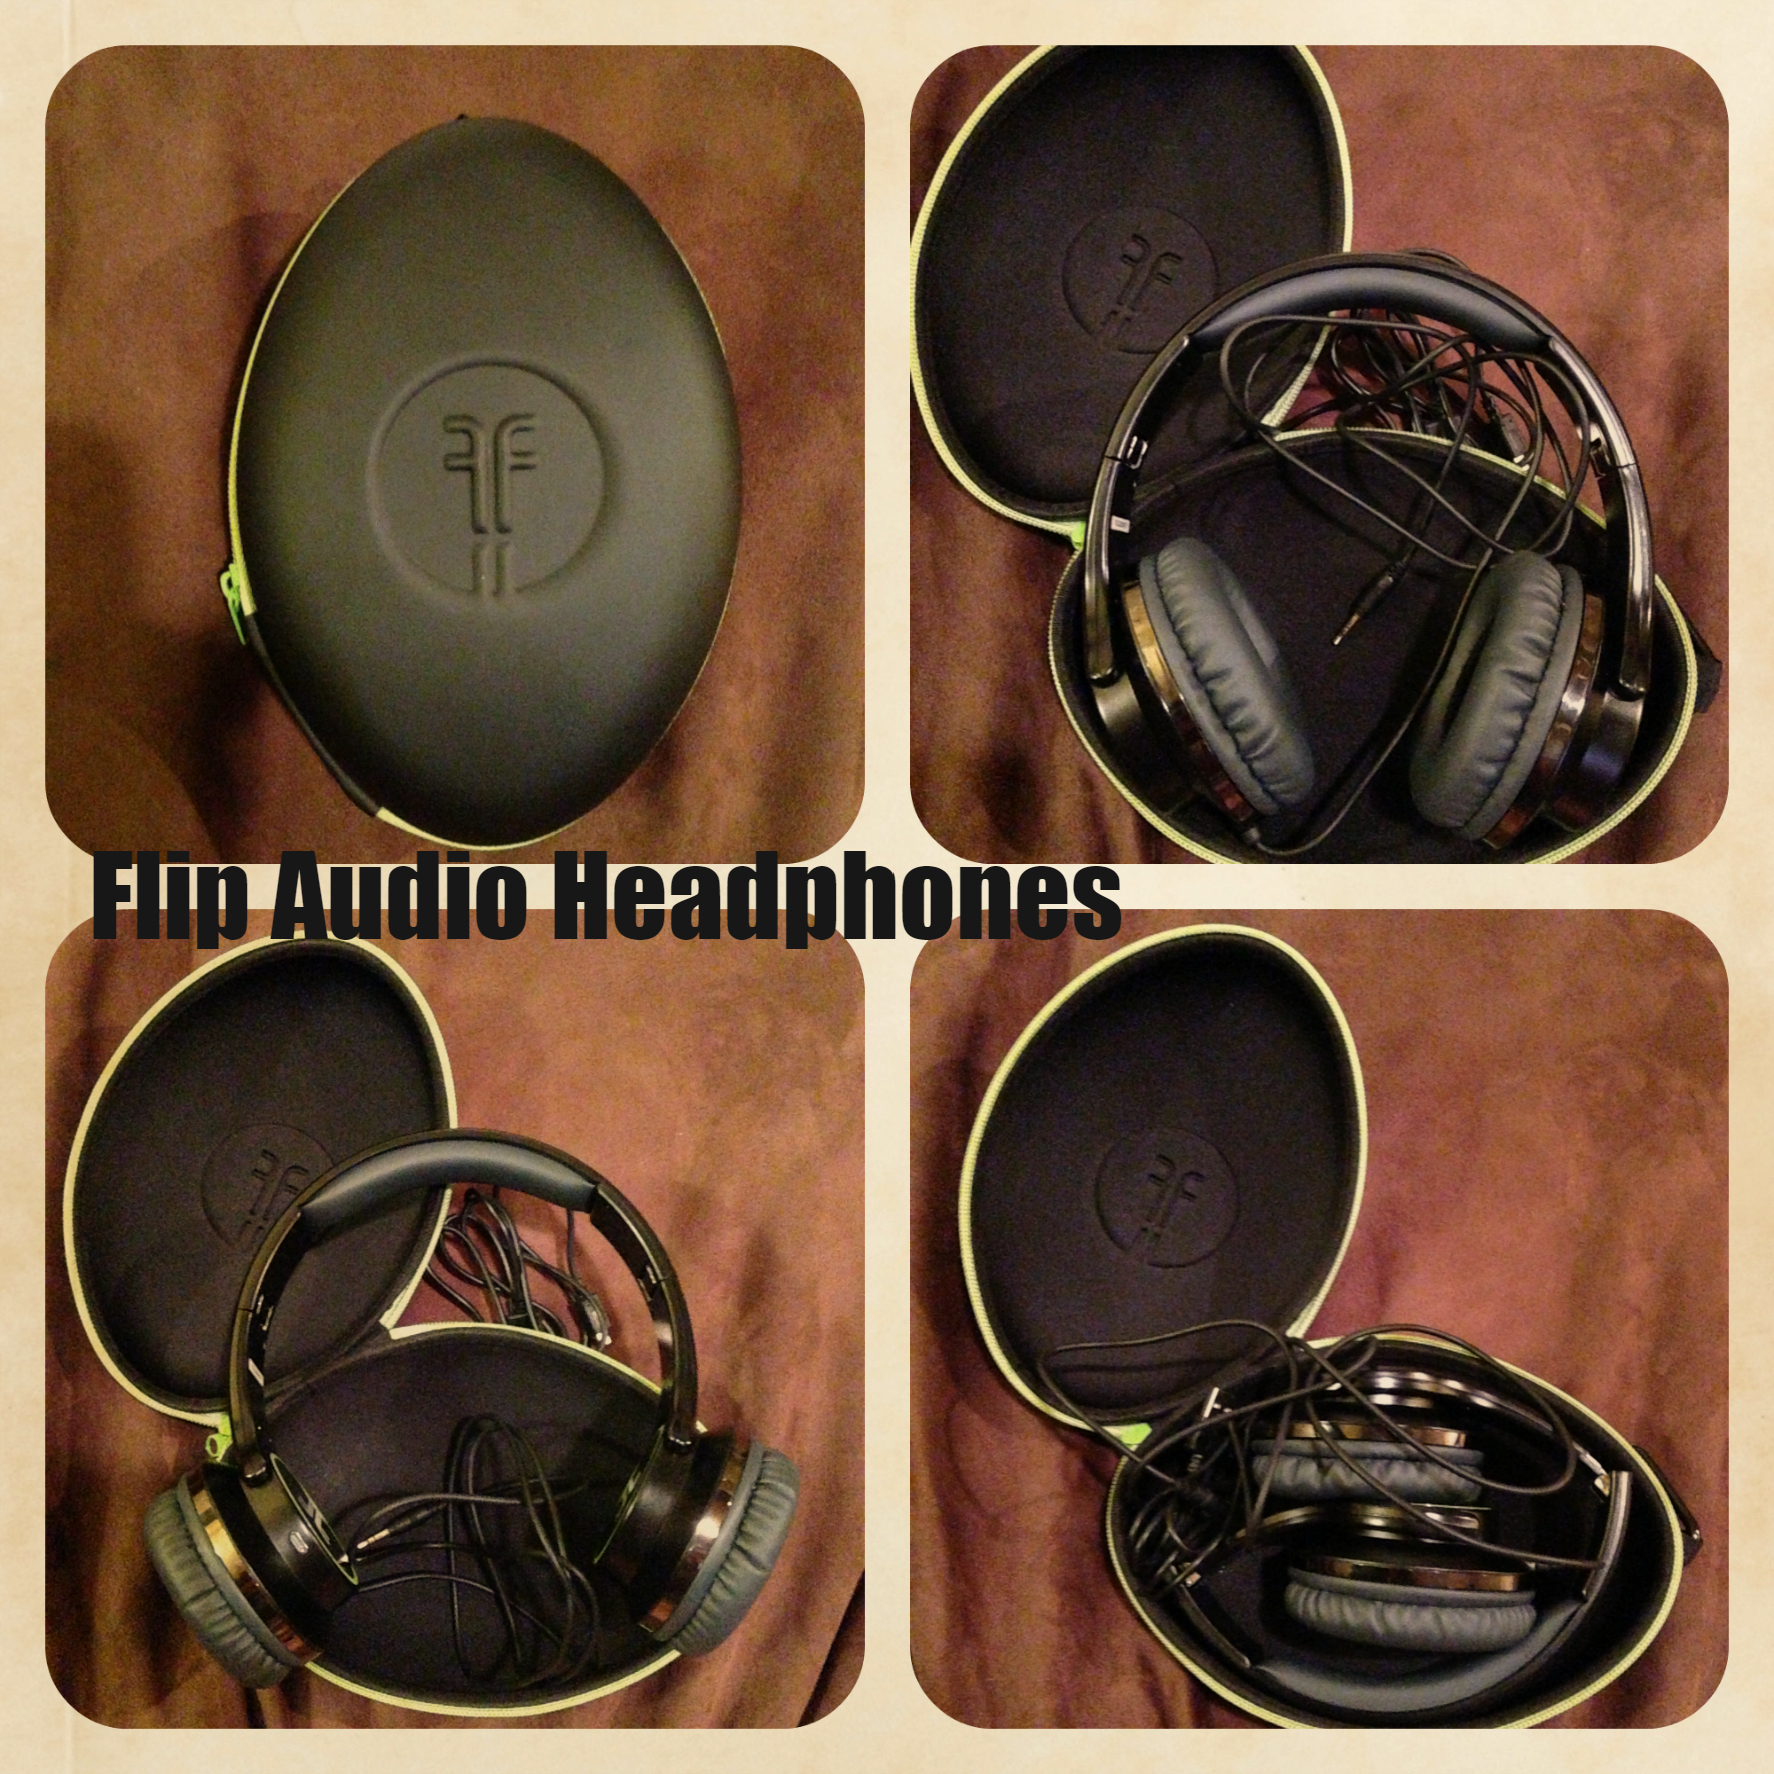 Flip Audio Headphones